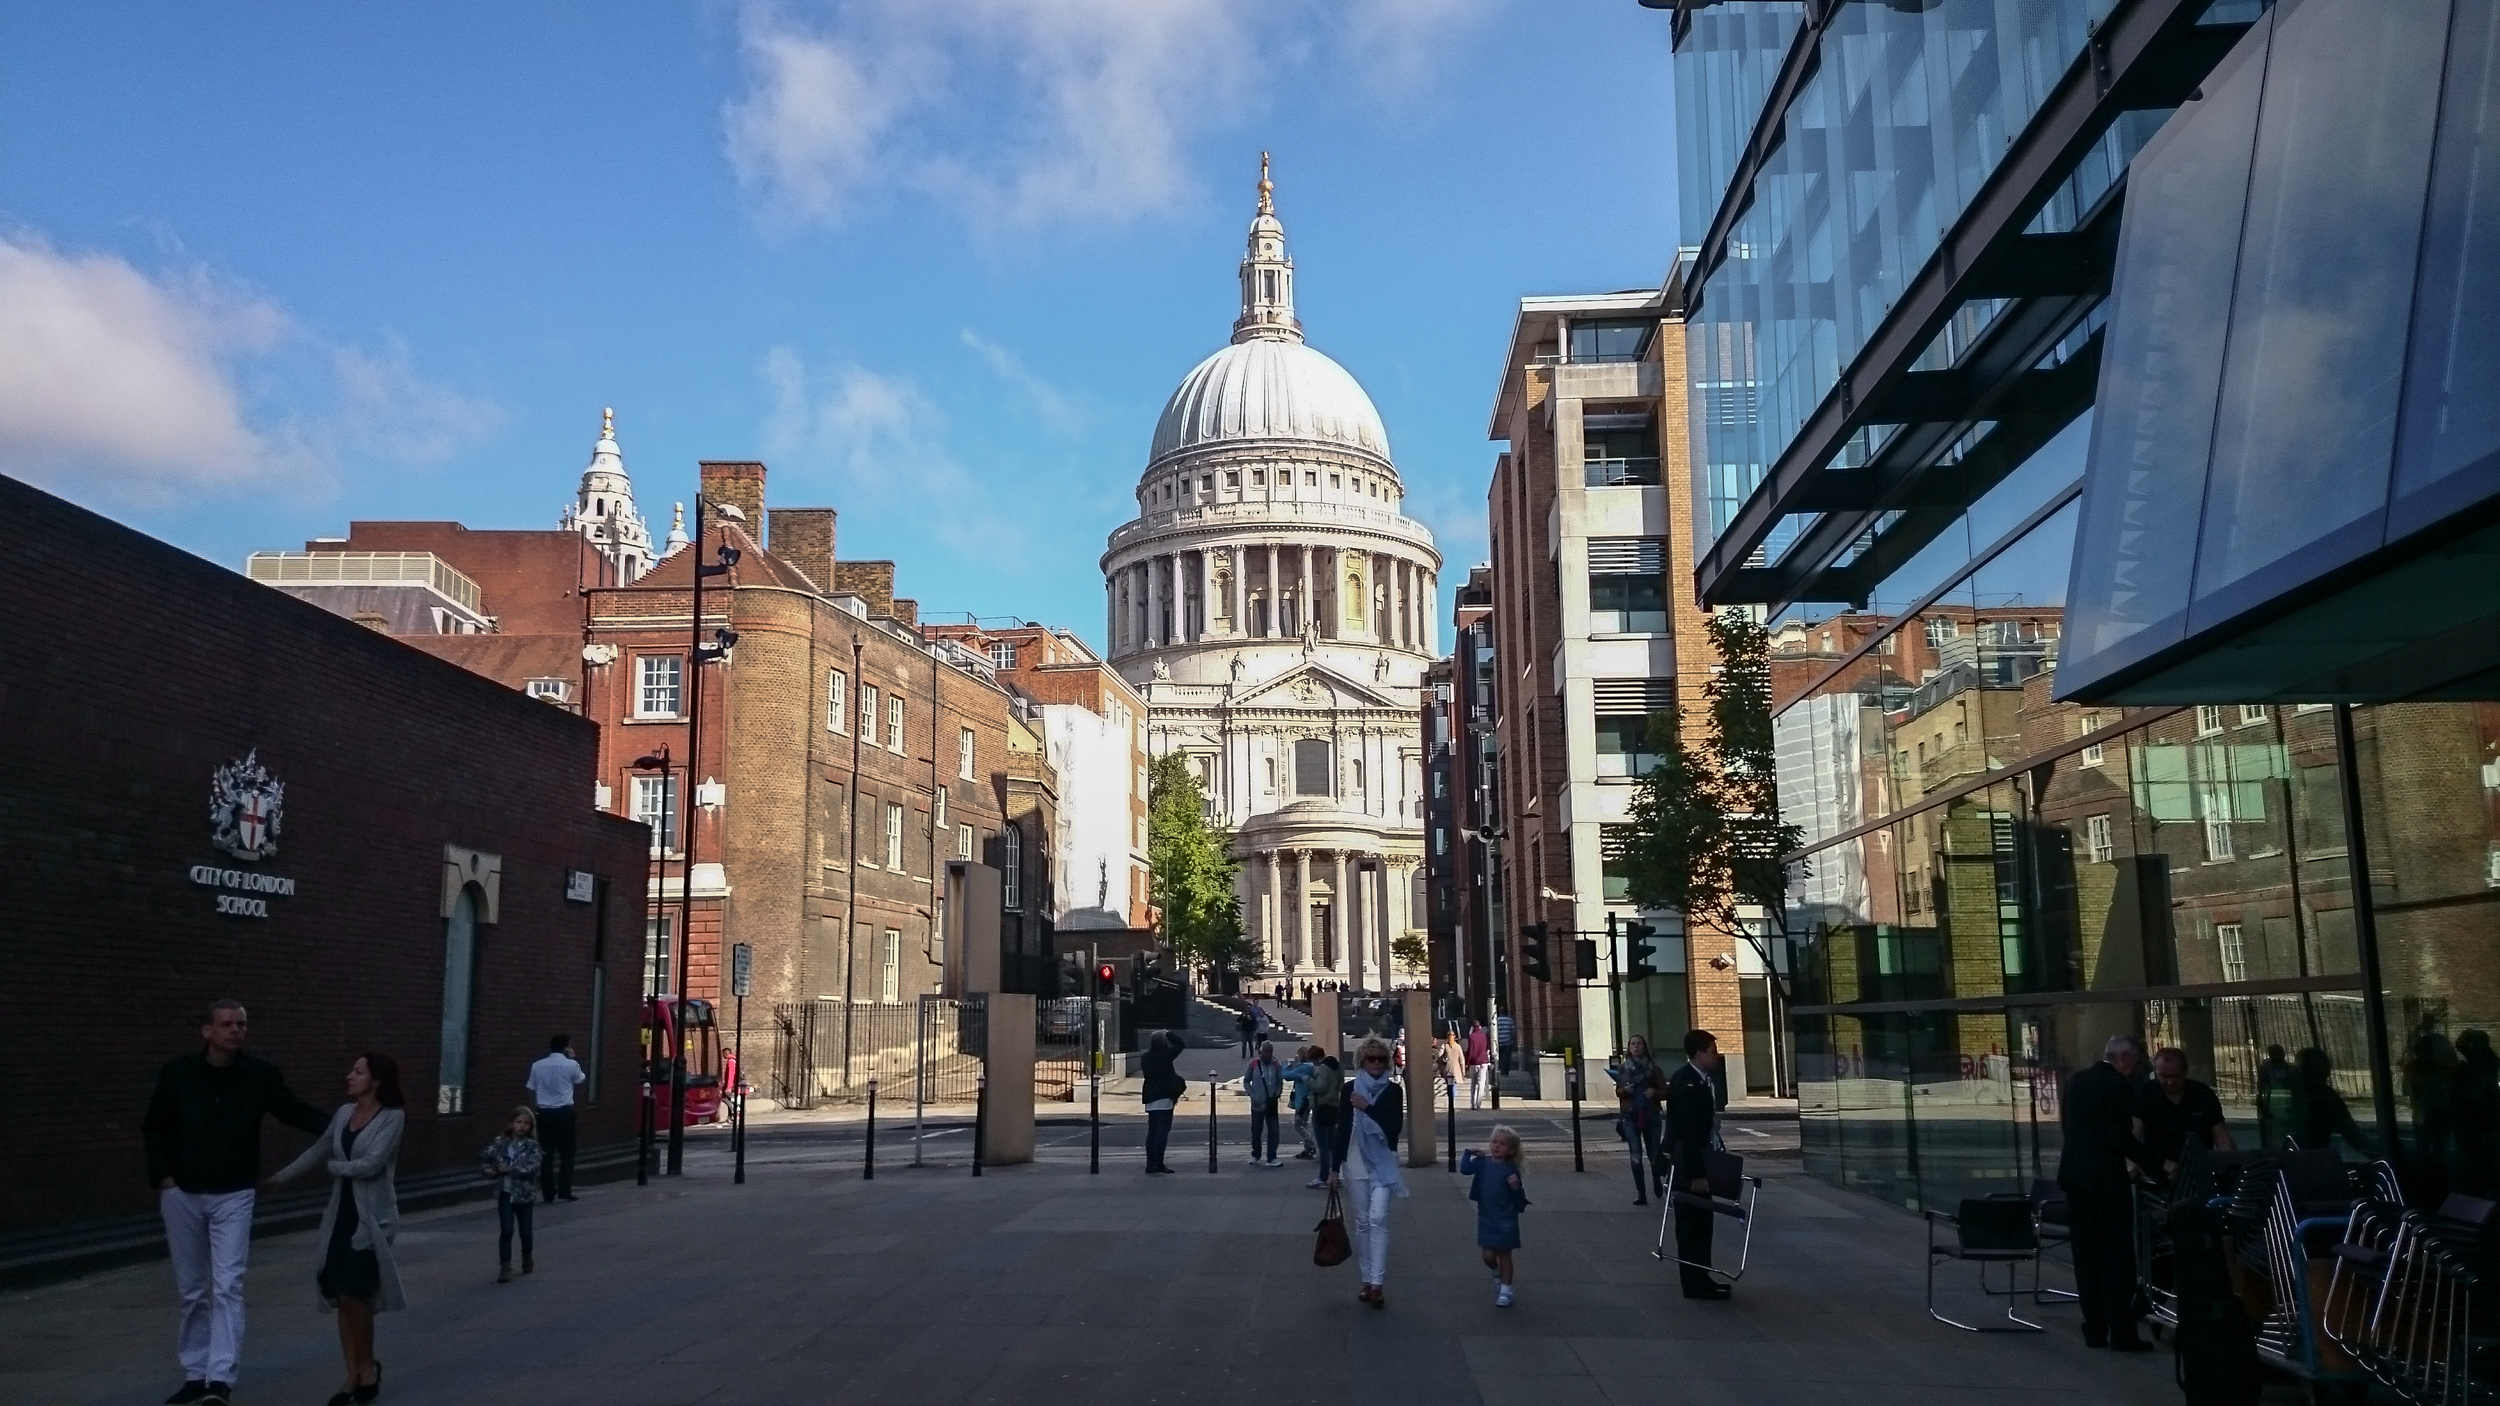 St Paul's Cathedral - Christopher Wren